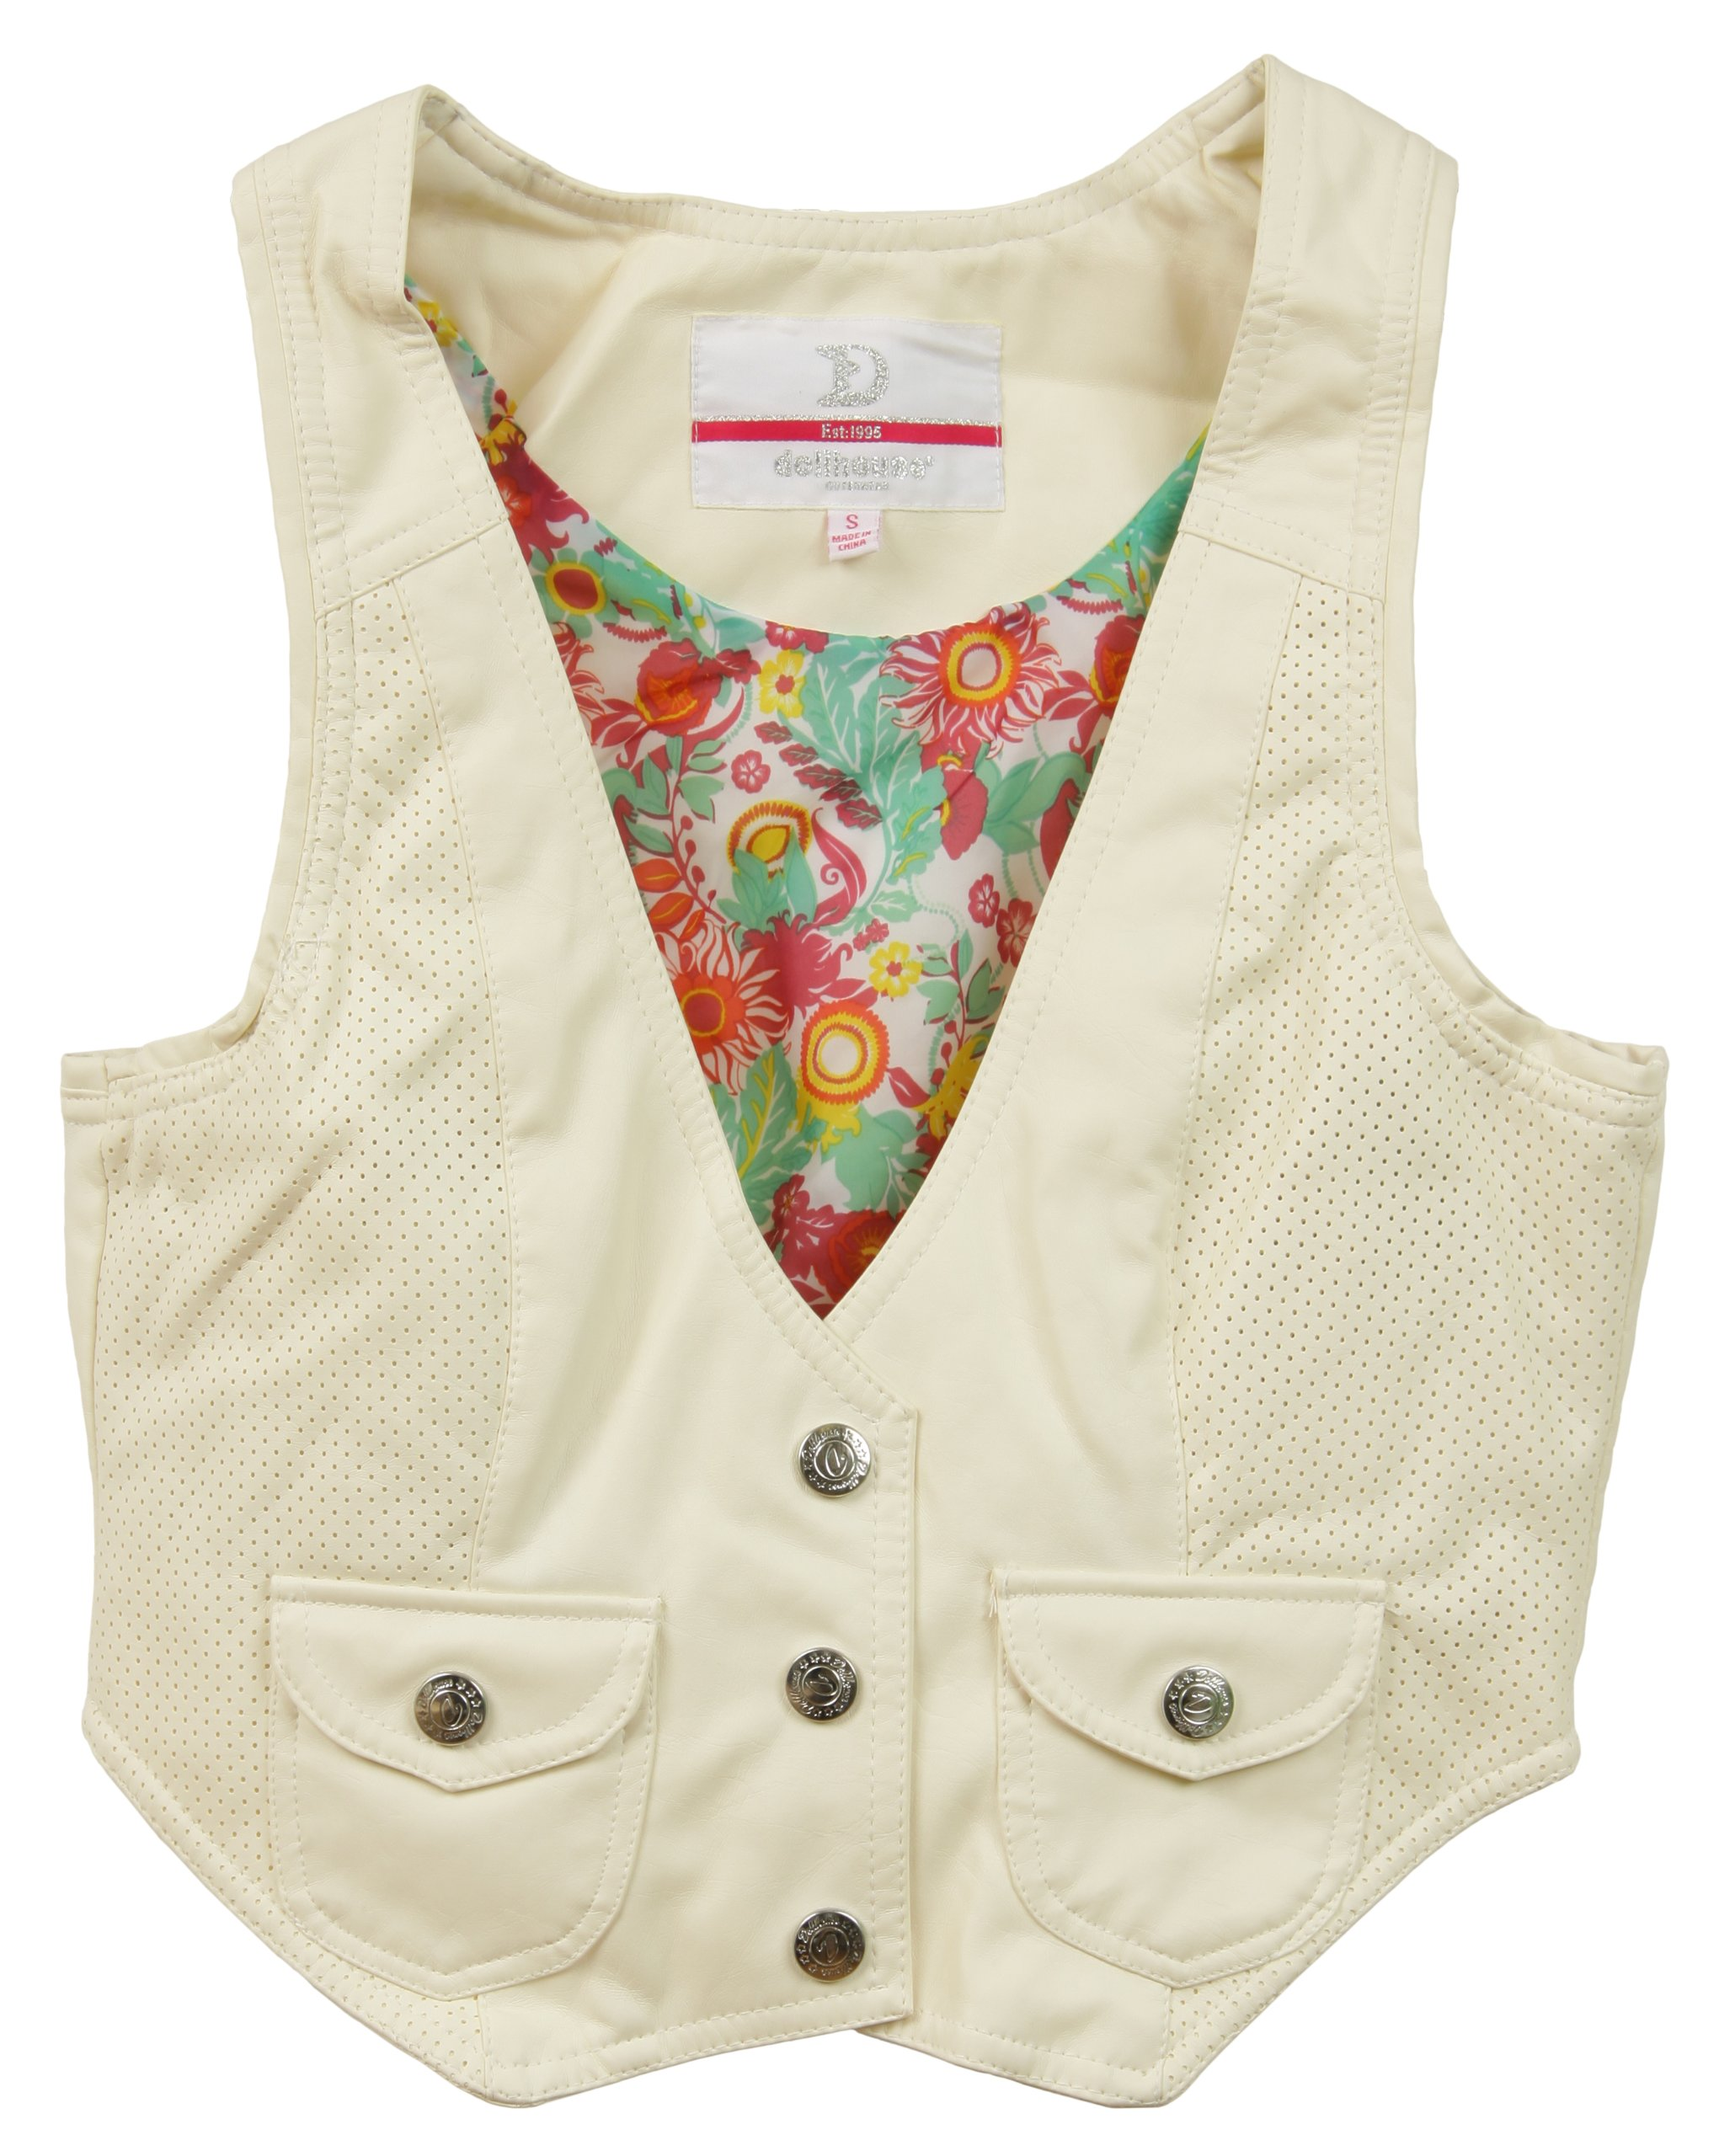 Dollhouse Juniors PU Imitation Leather Vest with Floral Lining - Ivory White (Small)